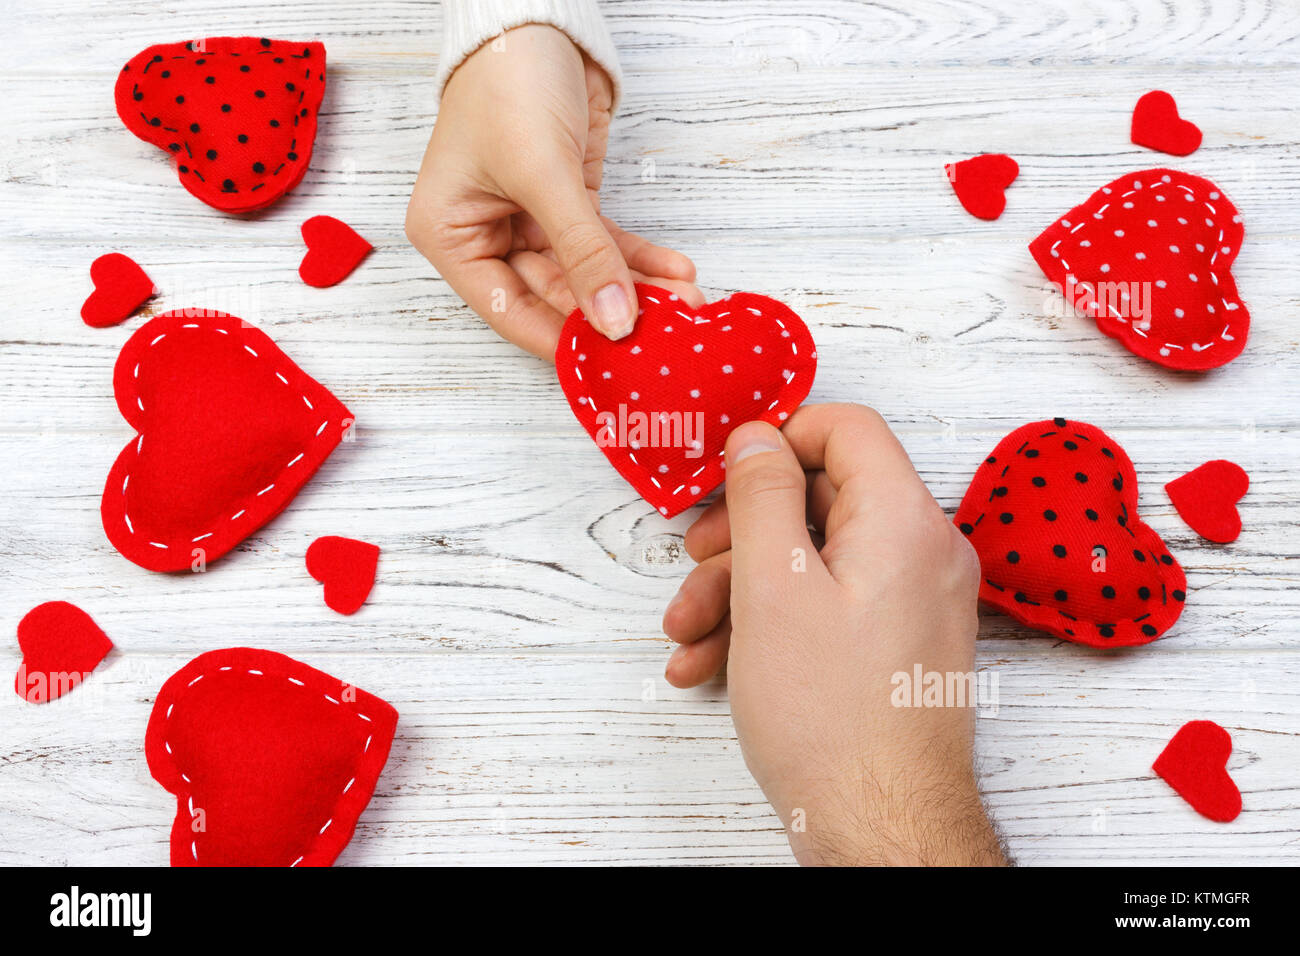 Heart In Hand Stock Photos & Heart In Hand Stock Images - Alamy